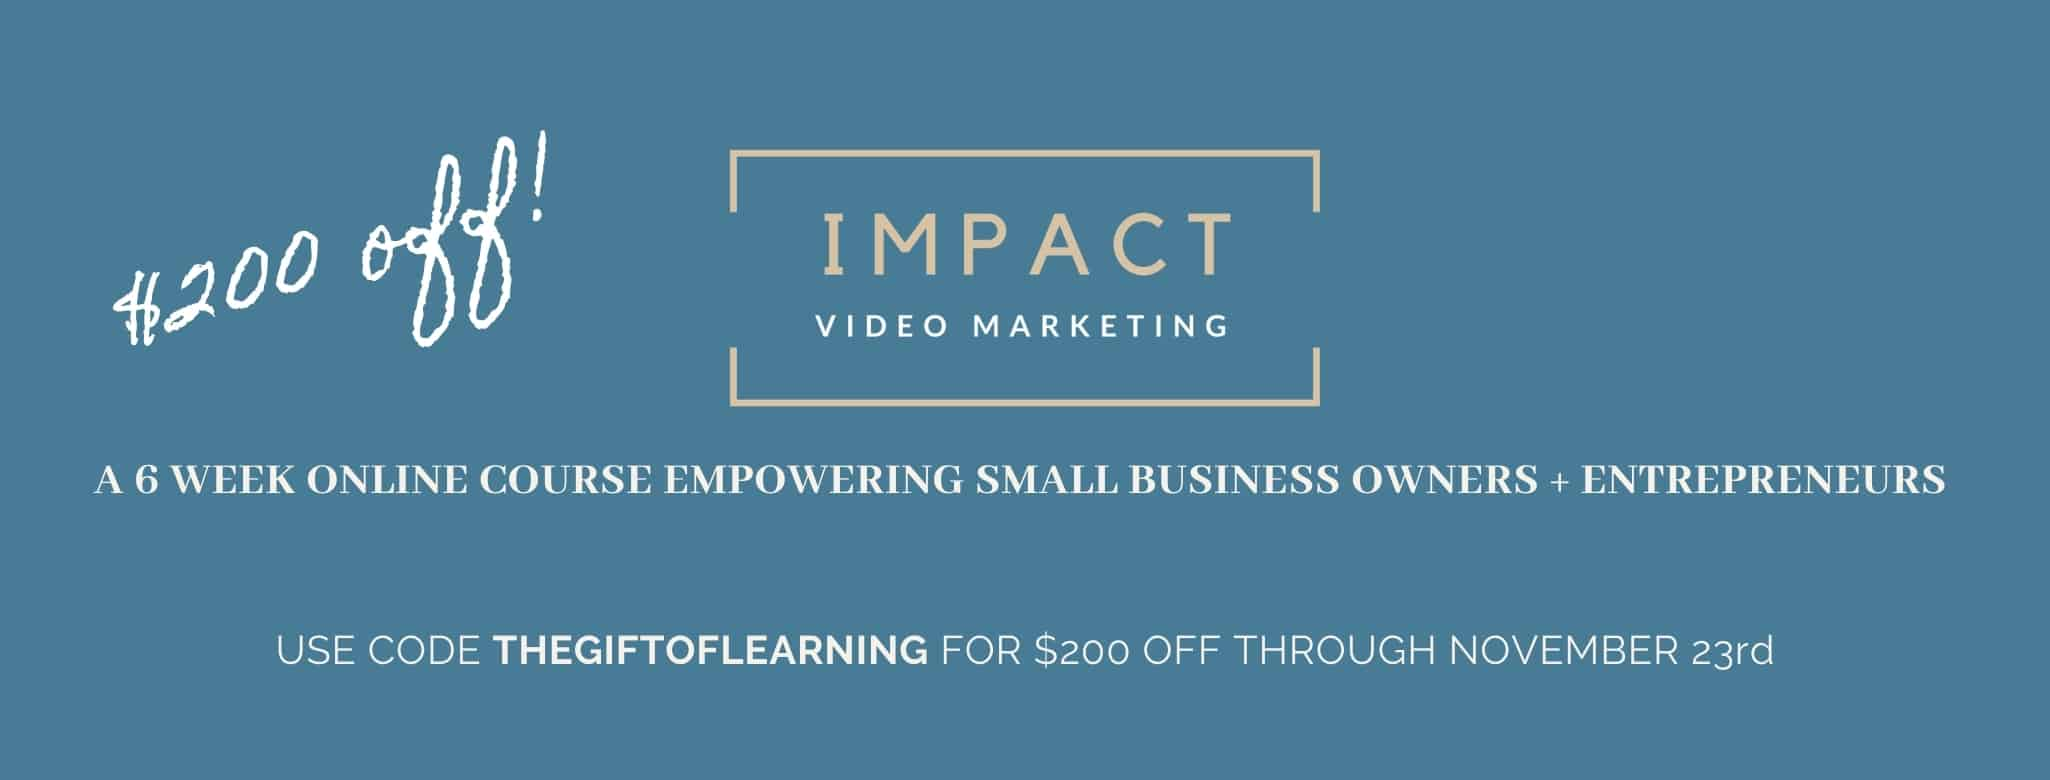 Online Video marketing course for small business owners and entrepreneurs